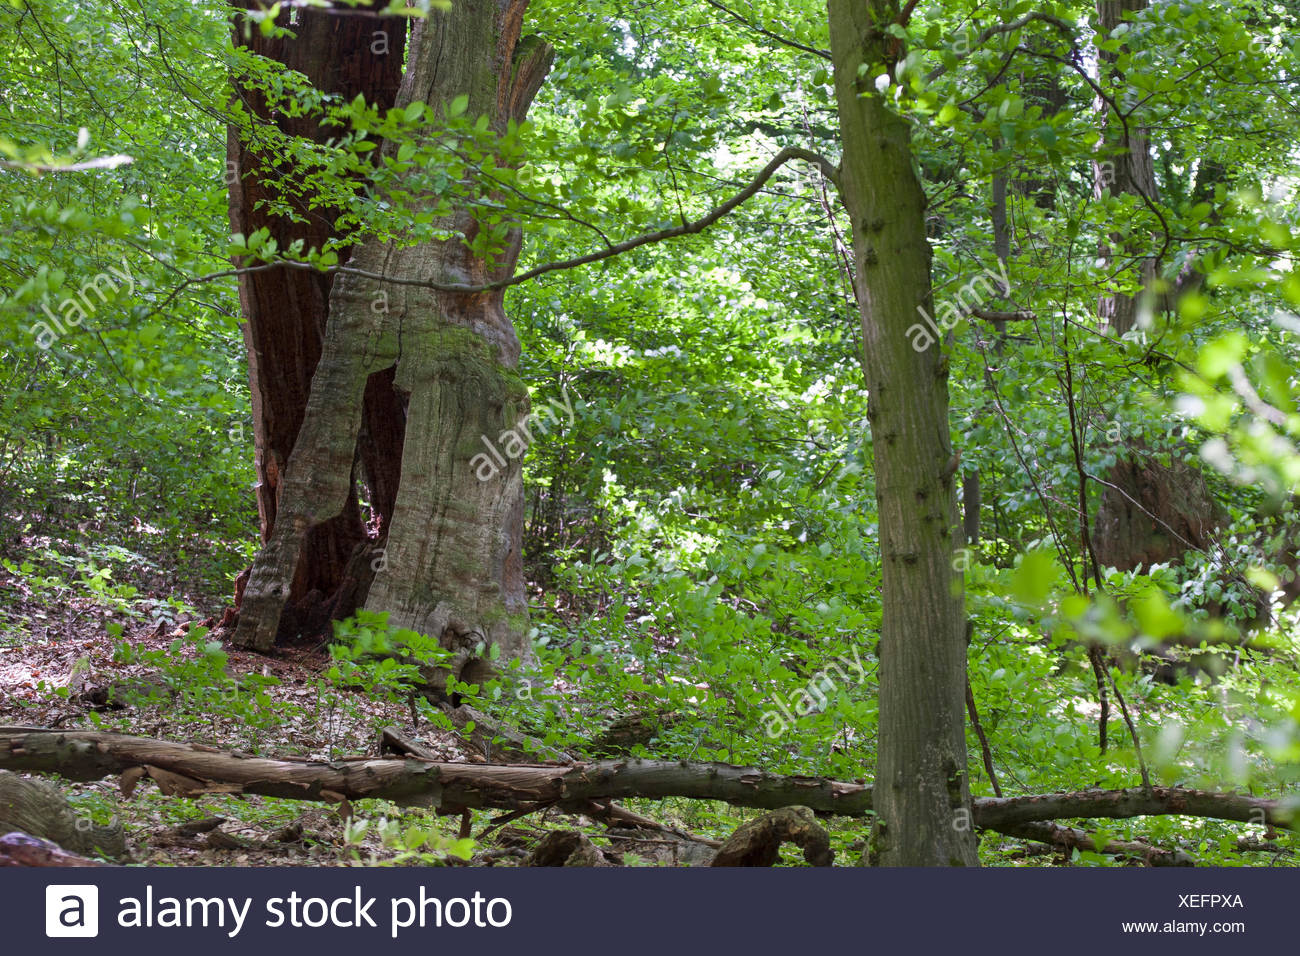 primeval forest with an old dead tree, Germany - Stock Image